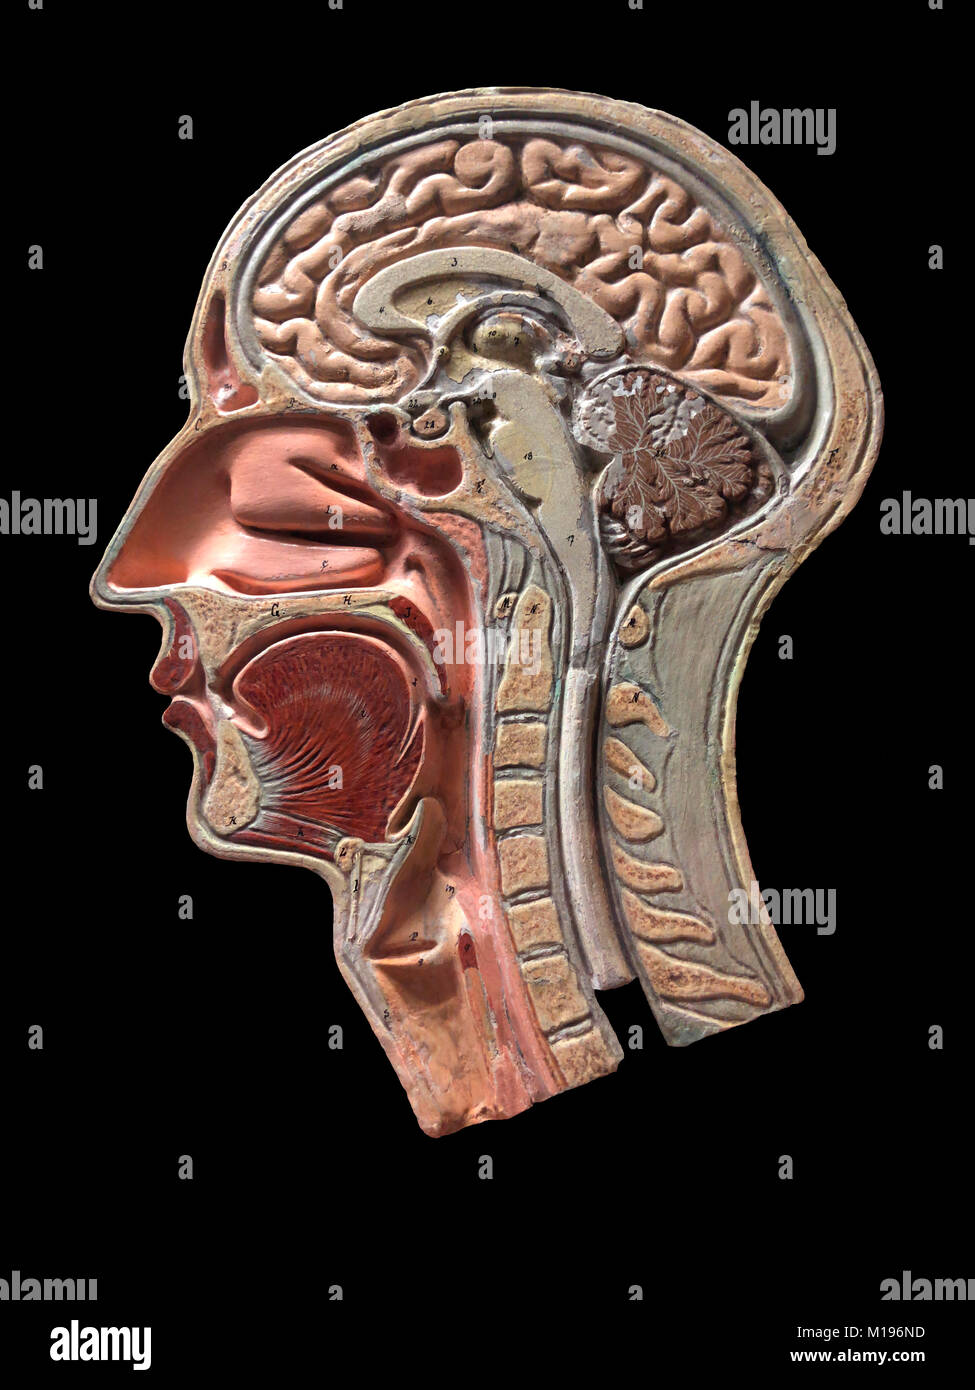 Anatomical Model Of Human Skull And Brain Stock Photos Anatomical